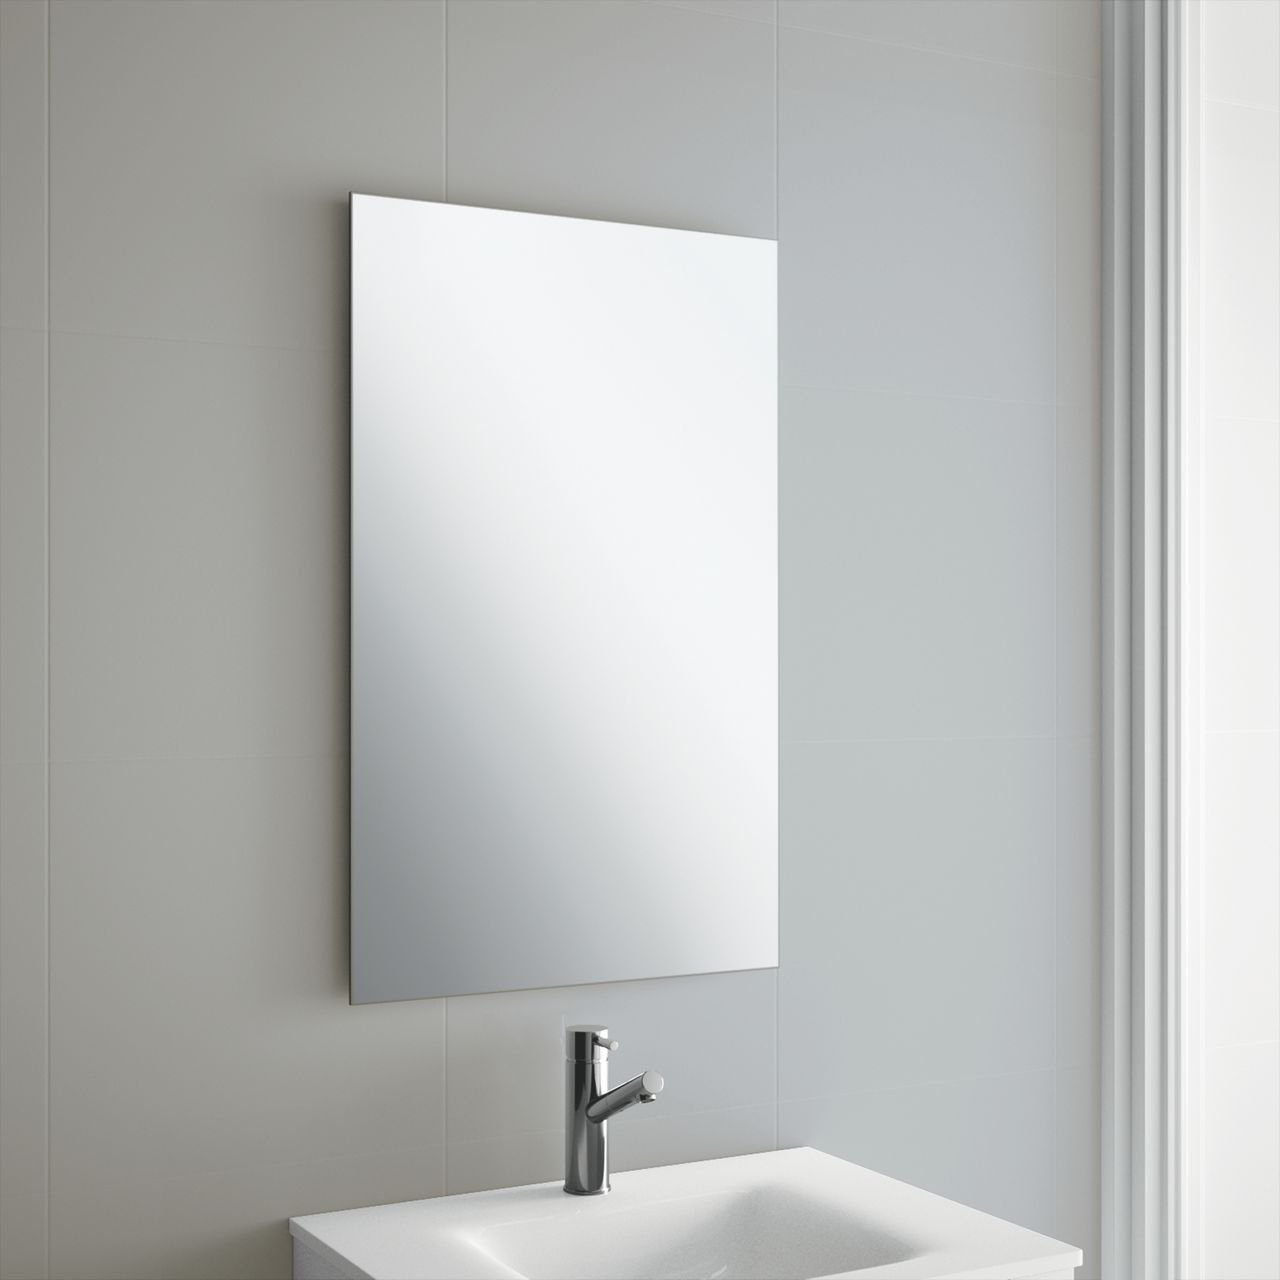 60 x 45cm Plain Frameless Bathroom Rectangle Mirror with Wall Fixings